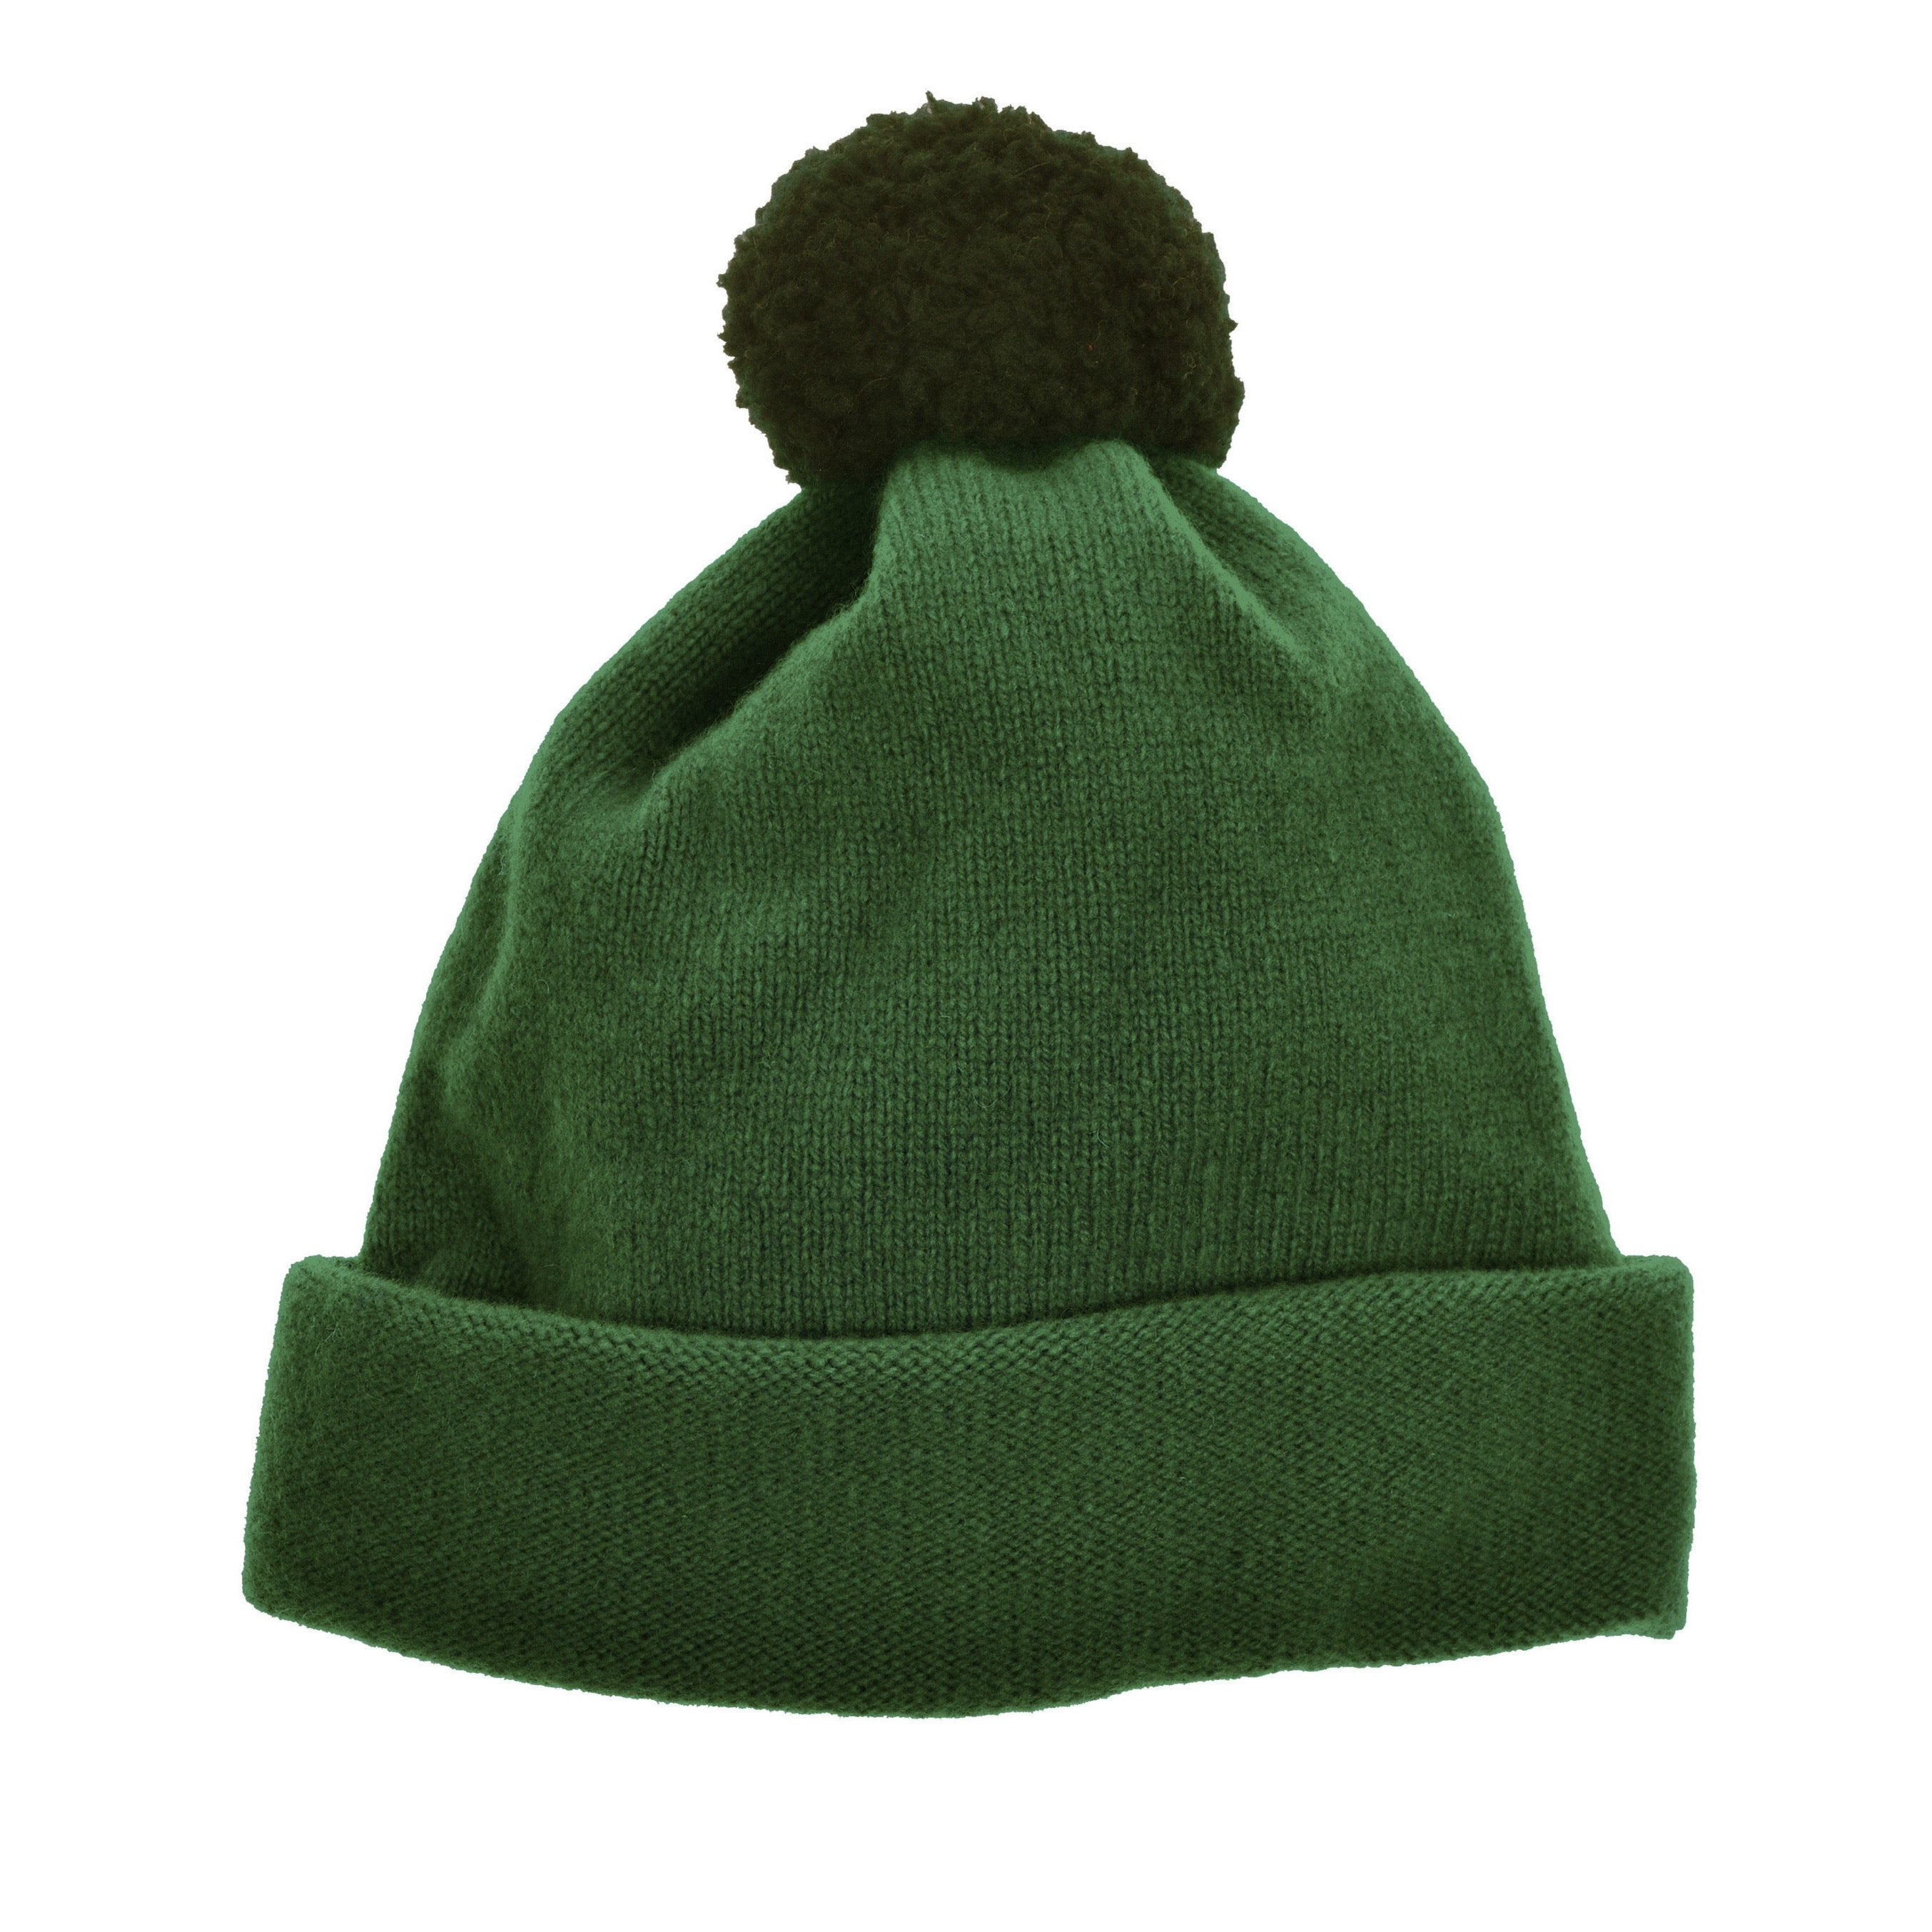 ARGYLL BOBBLE HAT FOREST GREEN – The Great British Baby pany